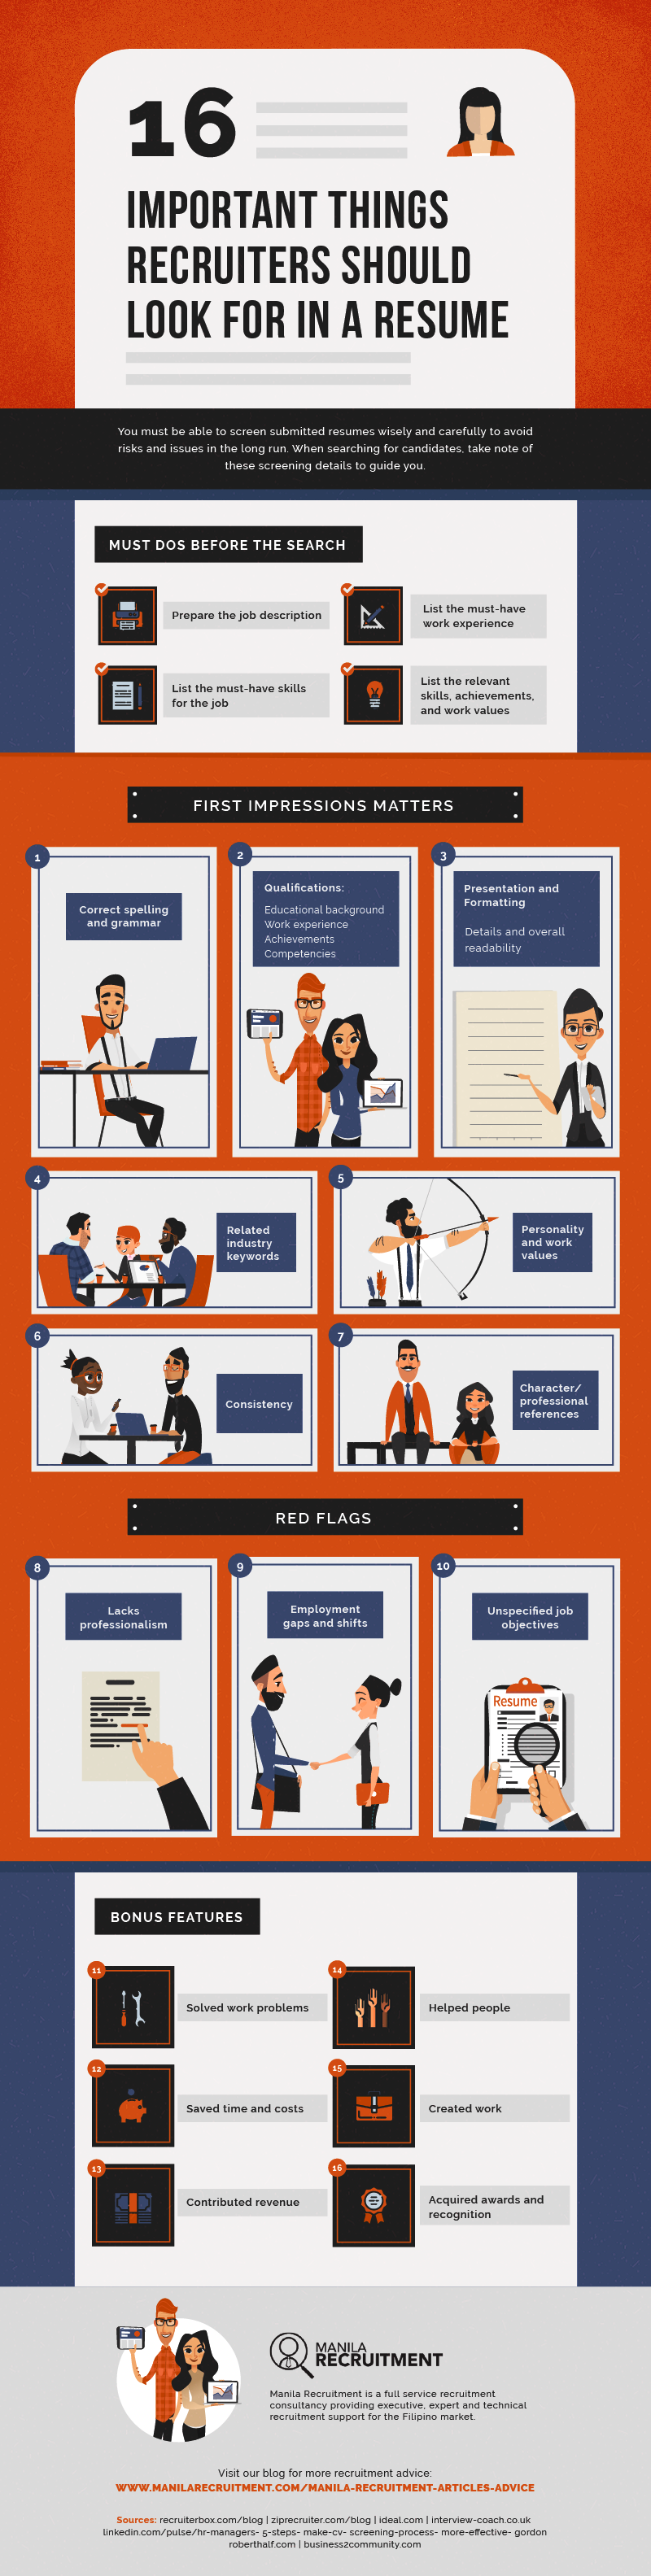 The What Recruiters Should Look For In A Resume Infographic